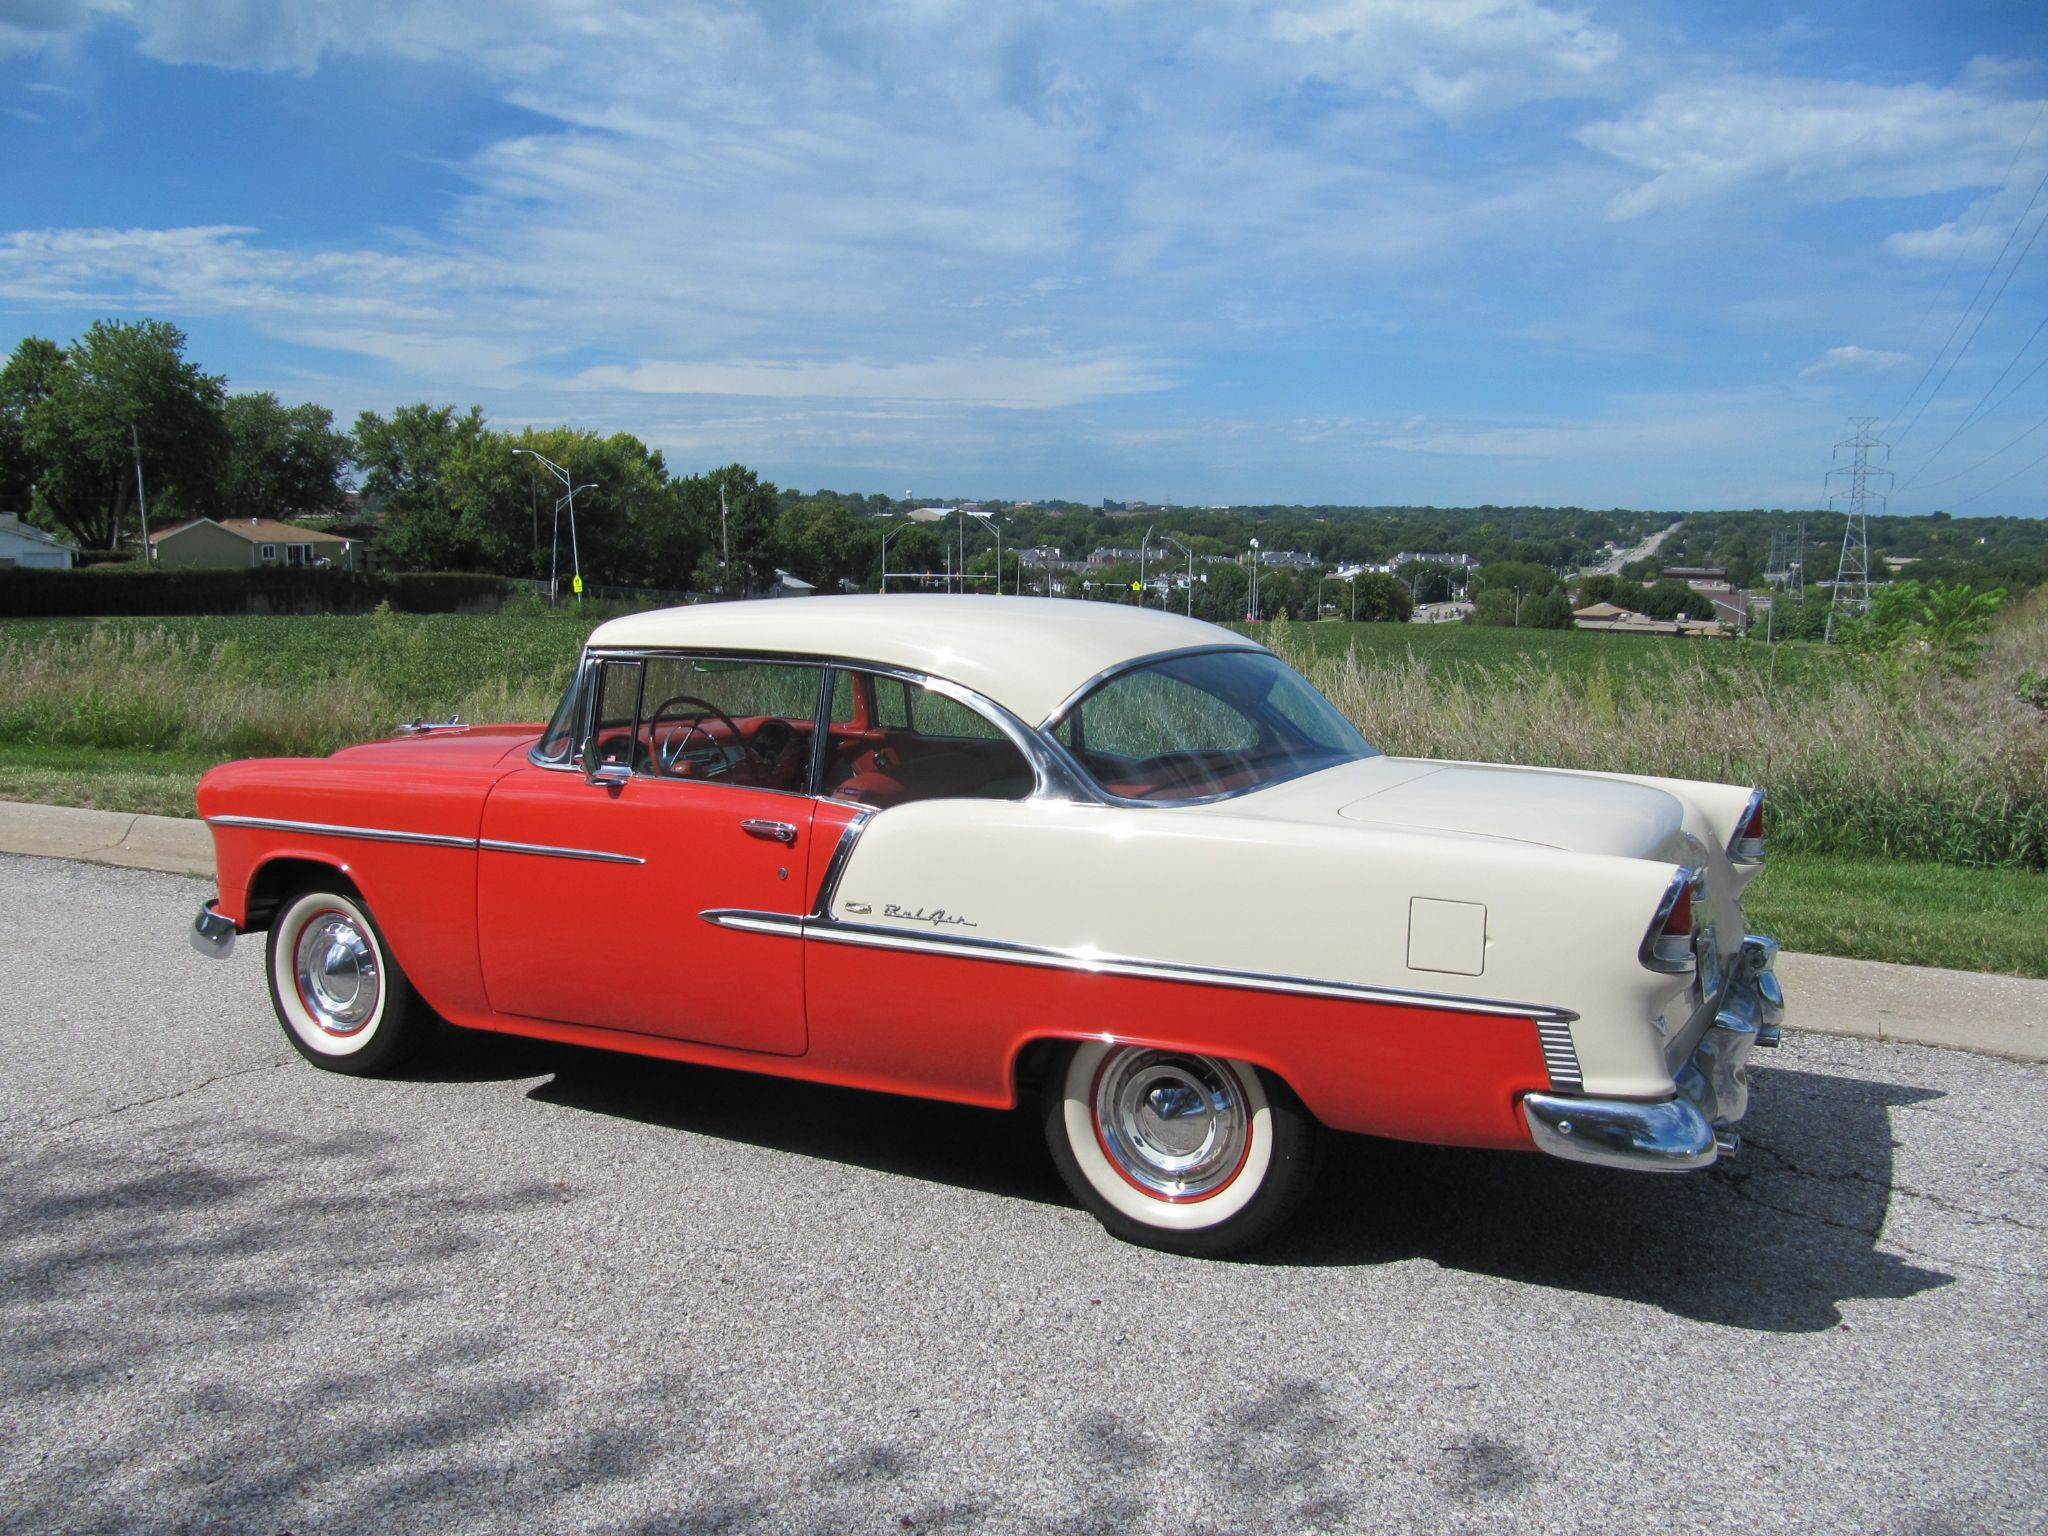 1955 Chevrolet Bel Air Sport Coupe Factory Conditioning For Sale 4 Door 27